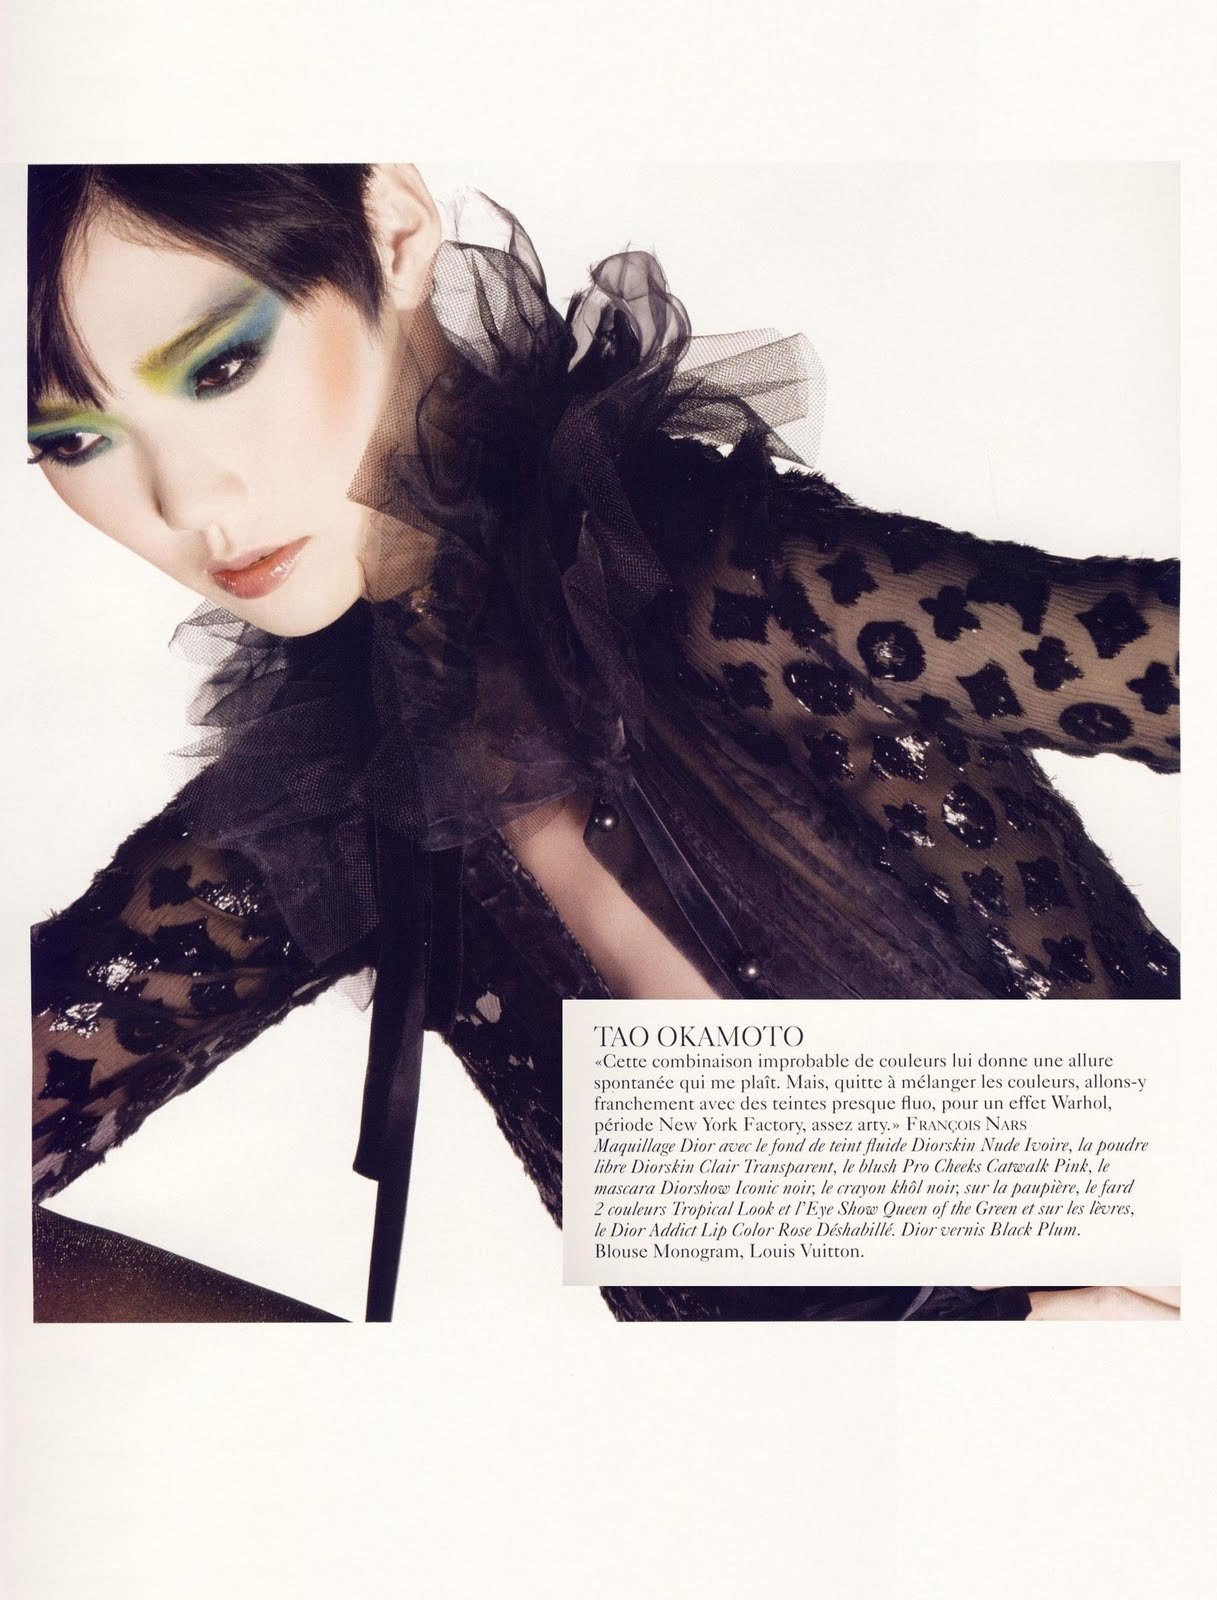 [Tao+Okamoto+-+Paris+Vogue+October+2009.jpg]